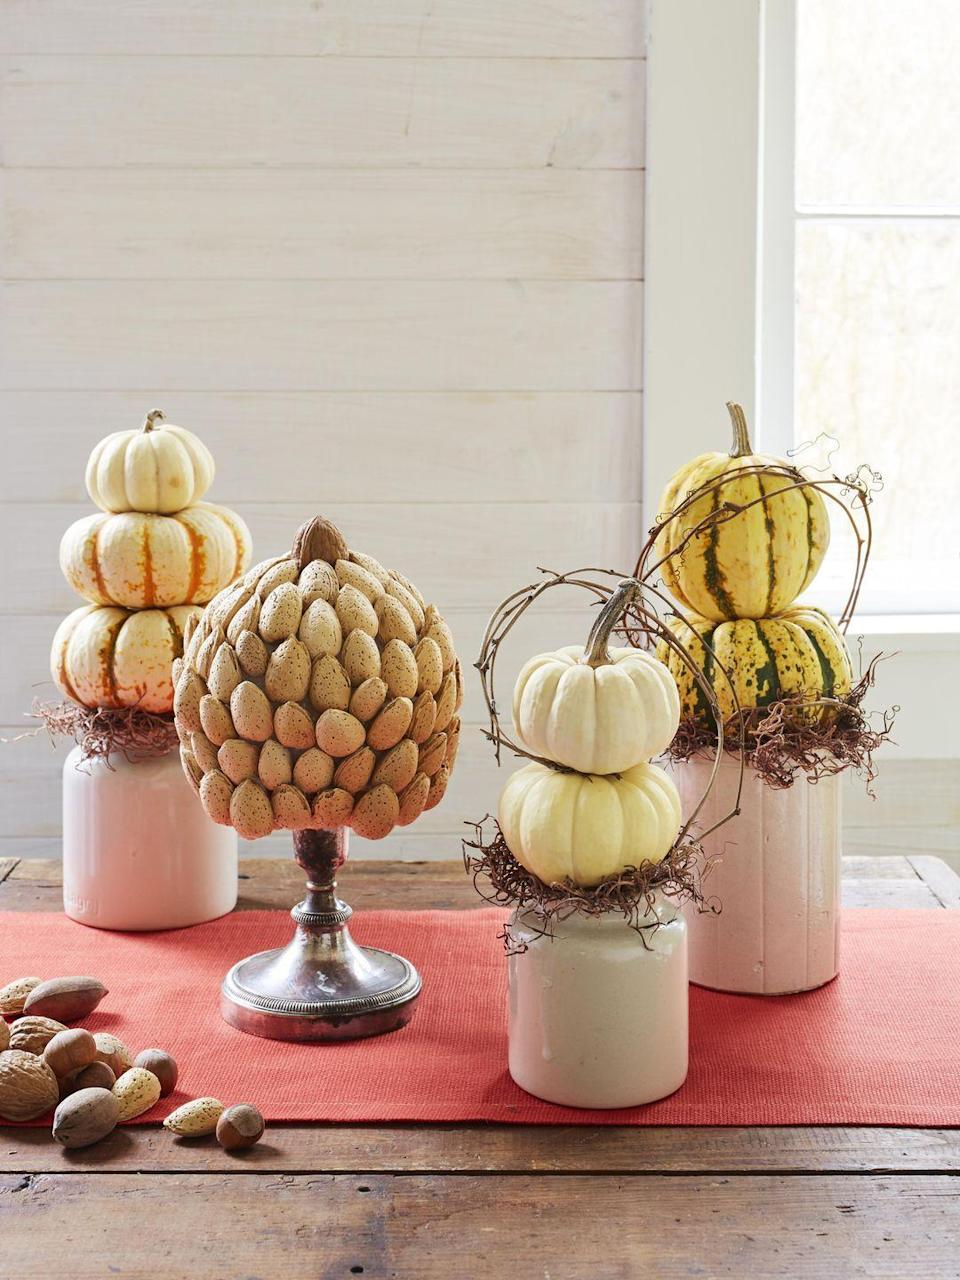 <p>Gather a grouping of these tabletop topiaries down the middle of the table or on a buffet. <br></p><p><strong>To make the nut topiaries:</strong> Lightly spray styrofoam craft balls with brown paint. Once dry, hot glue nuts to styrofoam balls in an orderly pattern, as shown. For the walnut topiary, start with a middle equator row and add rows up and down from there. Add hazelnuts to fill any gaps. For the raw almond topiary, start at the top and work your way down, gluing horizontal rows around the perimeter and overlapping slightly for full coverage. Leave space at bottom to rest on top of candlestick bases. Attach with hot glue, as needed.<strong><br></strong></p><p><strong>To make the pumpkin and squash topiaries: </strong>Remove stems, except for the top pieces. Stack two pumpkins and secure using small wooden skewers or toothpicks. Skewer the bottom piece and place into crocks filled with floral foam. Cover foam with Spanish moss, and finish with grapevine accents.</p>